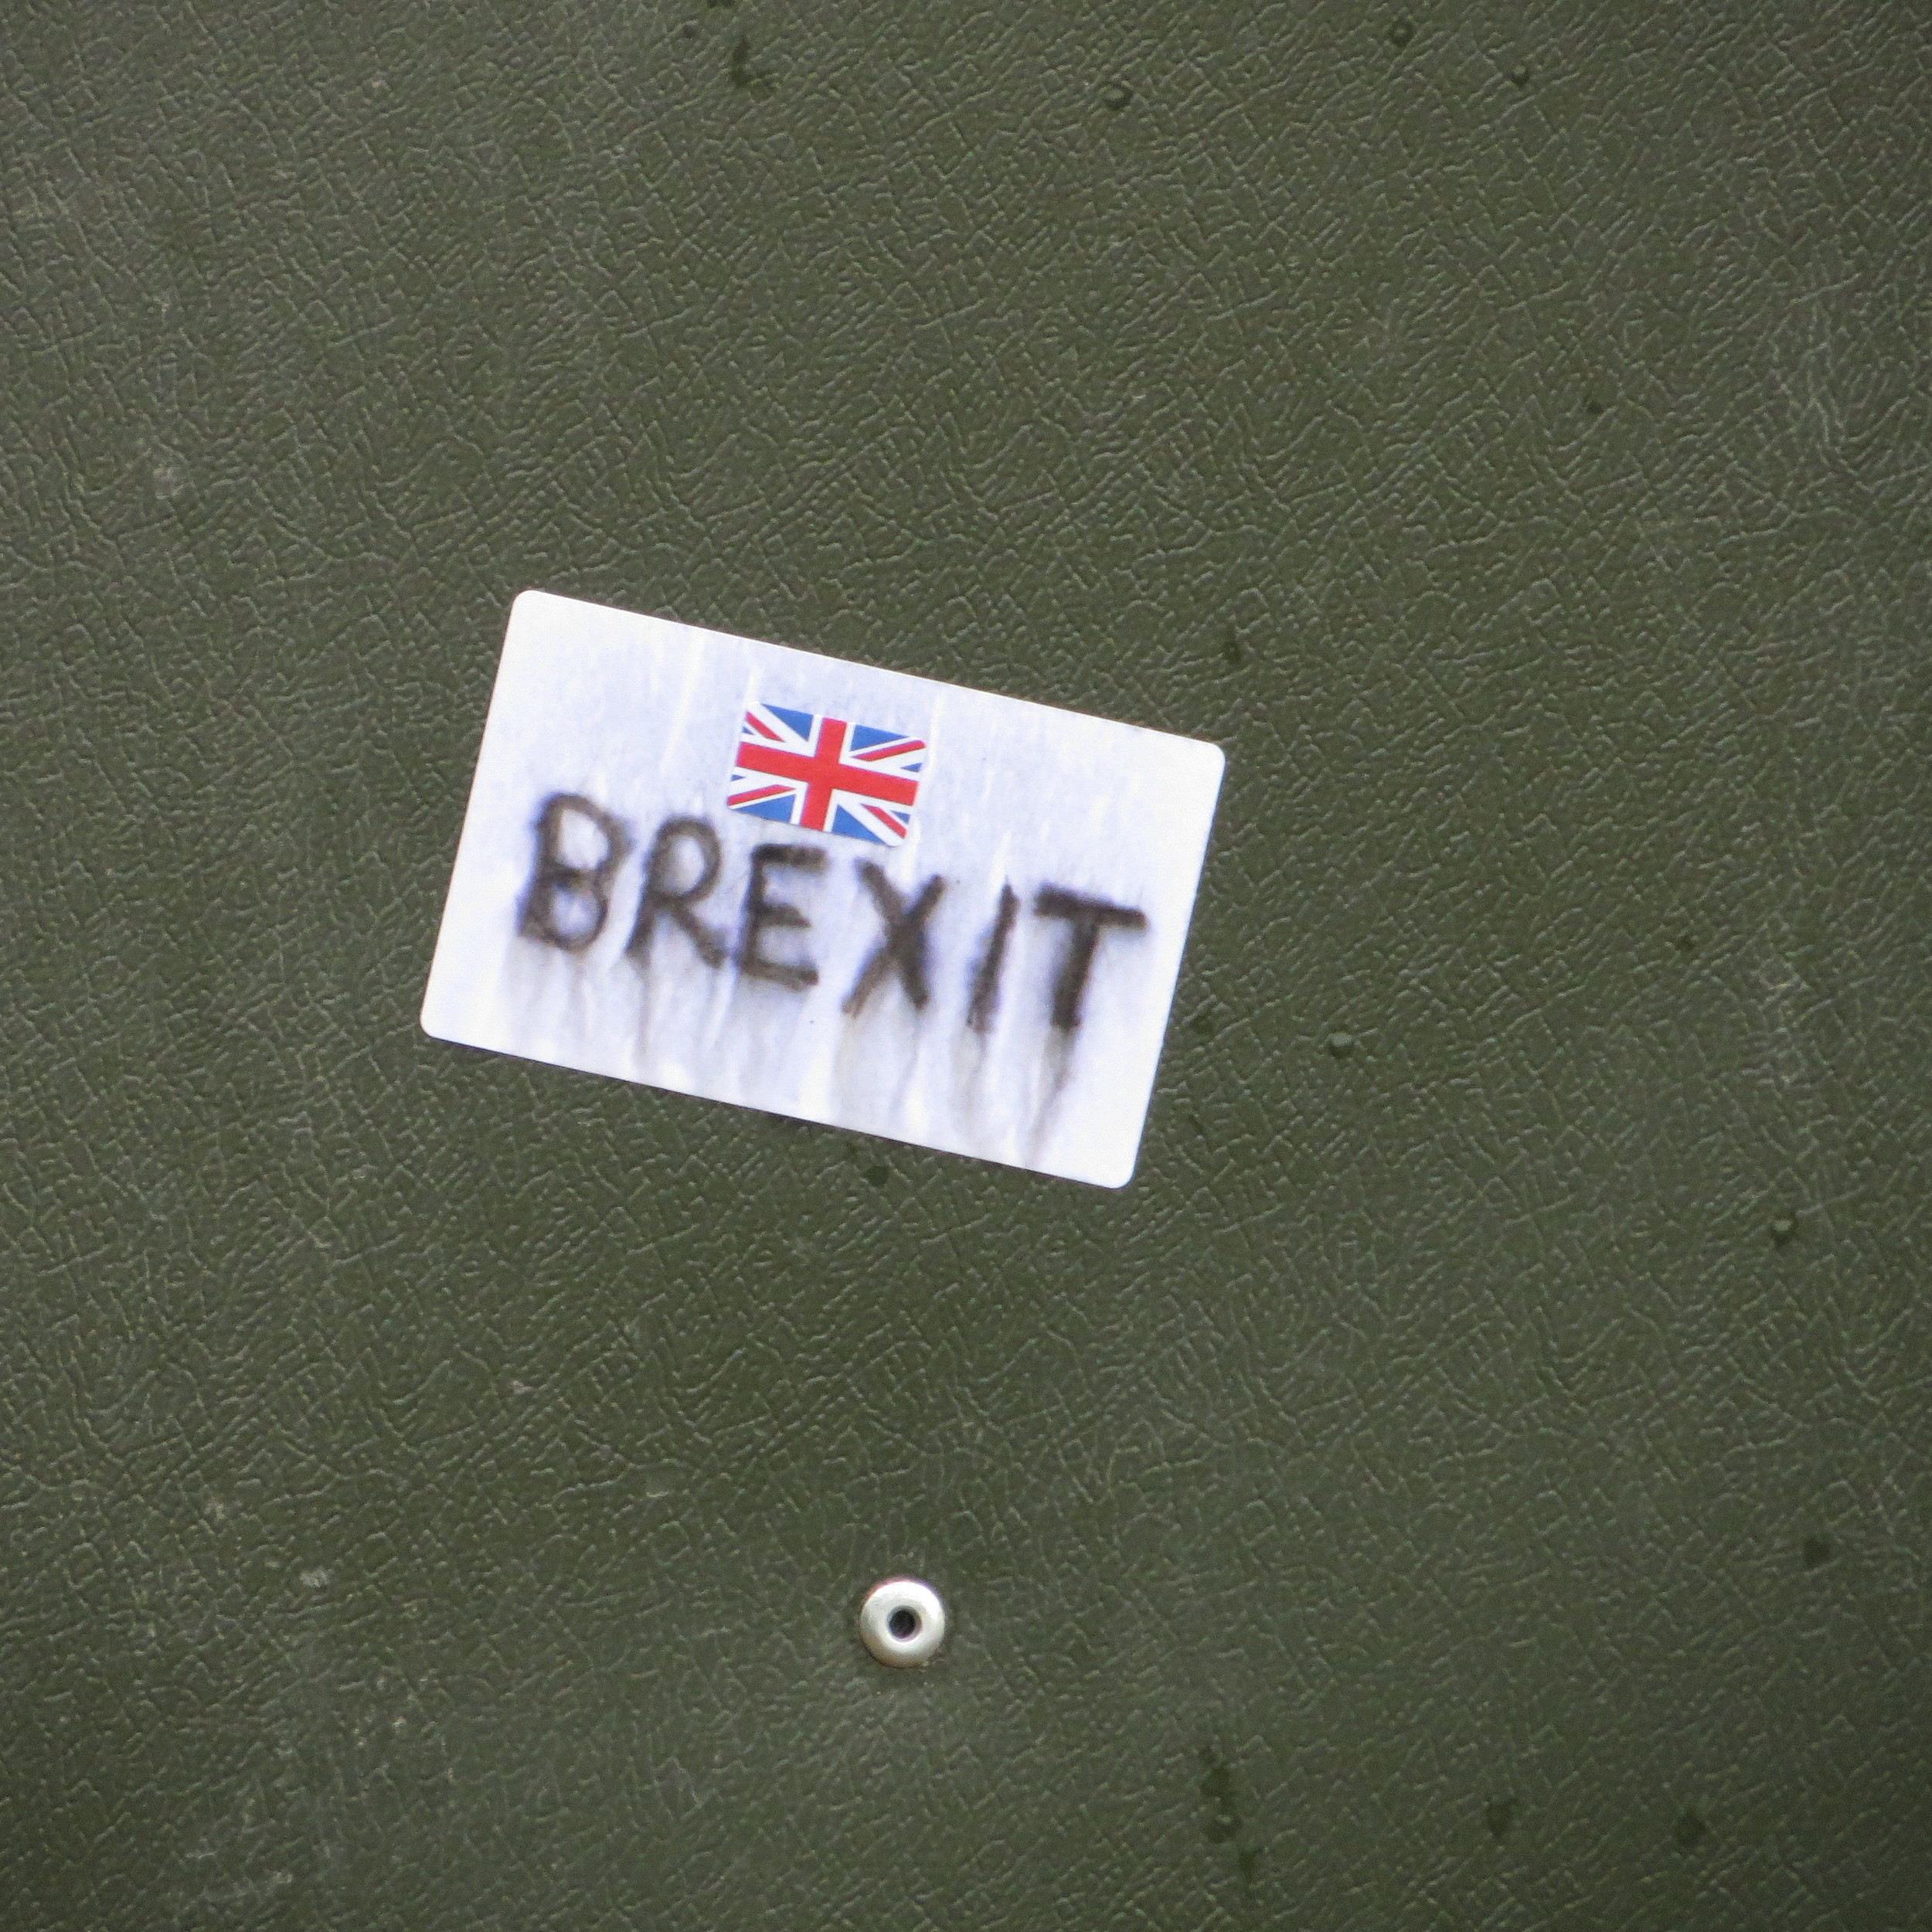 Brexit (D Smith - Flickr)